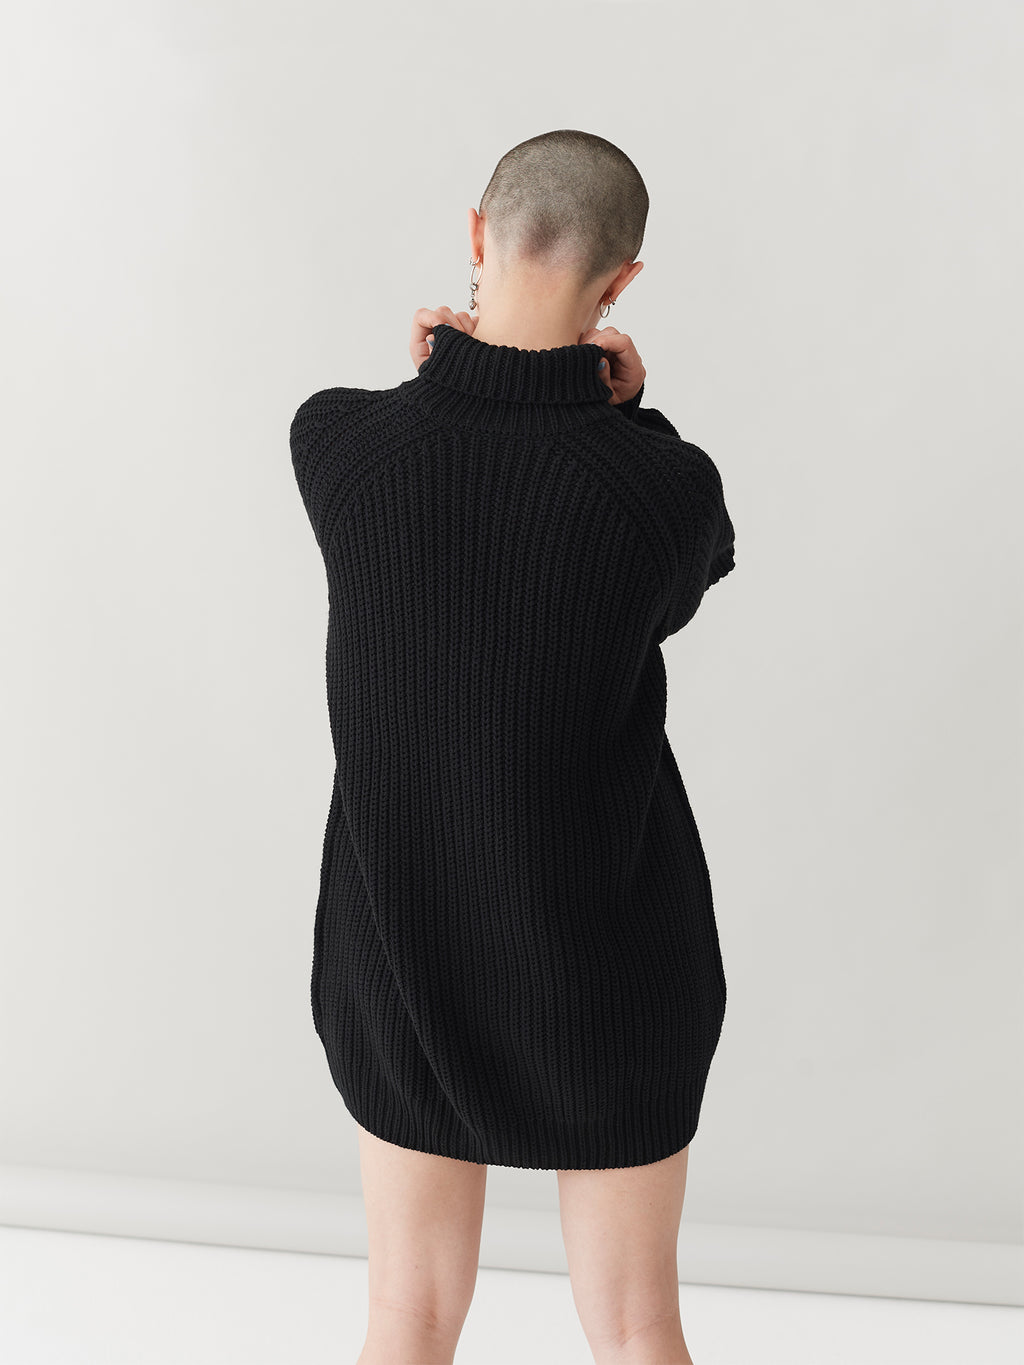 LO Jumper Dress